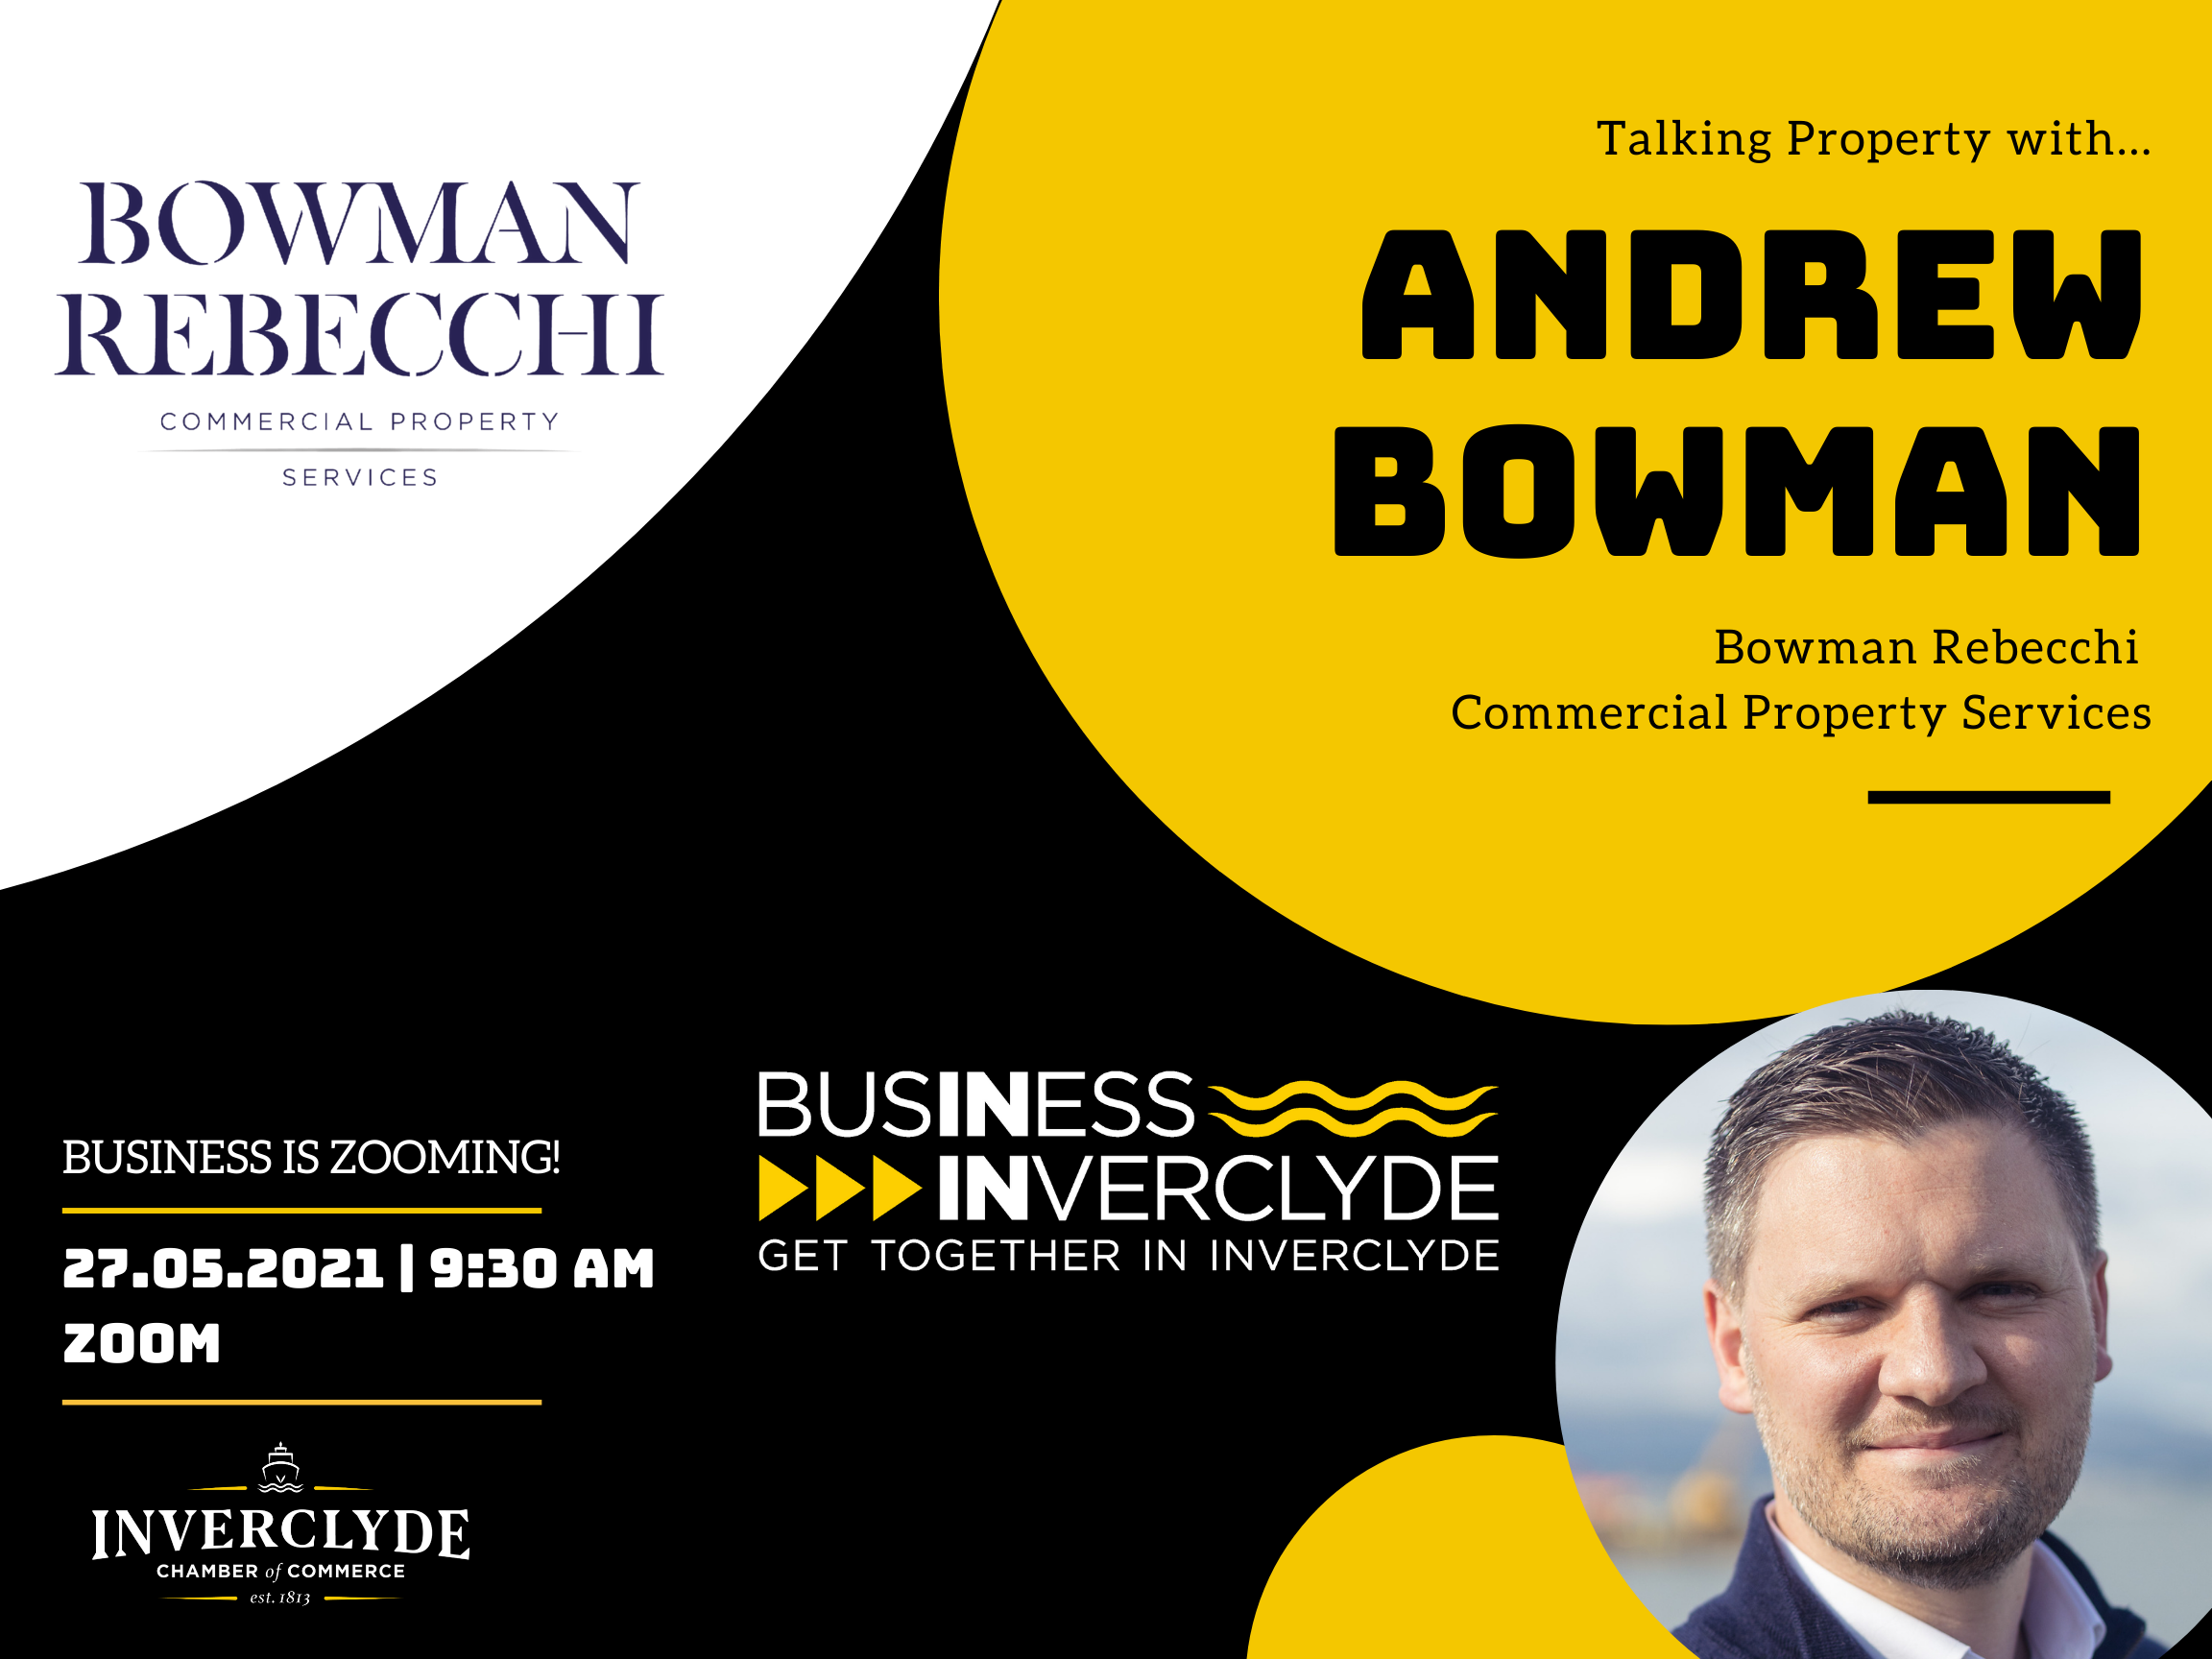 Business is Zooming - Andrew Bowman - May 2021